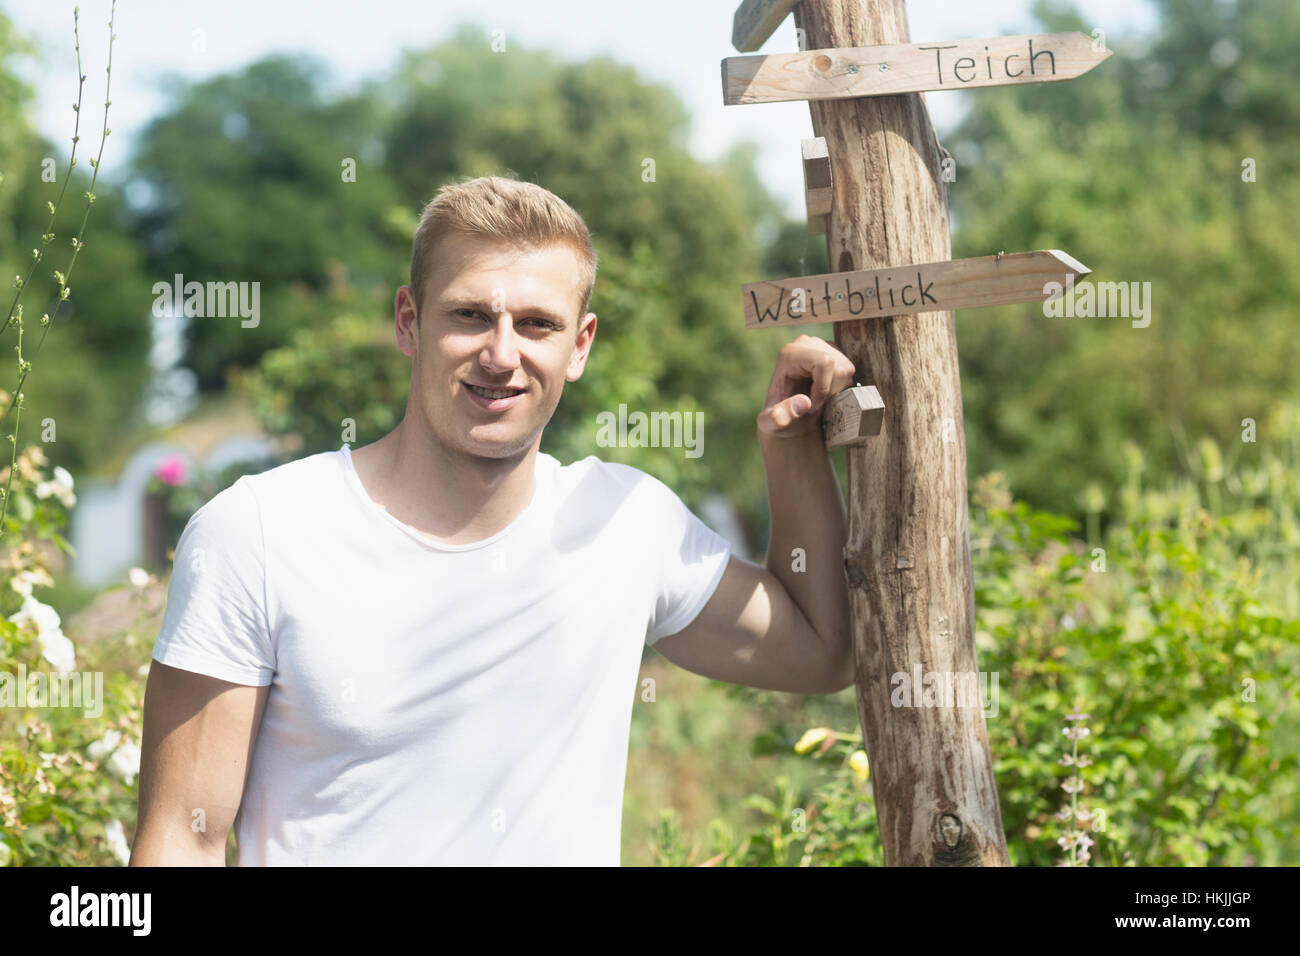 young man standing by wooden post in urban garden freiburg im stock photo royalty free image. Black Bedroom Furniture Sets. Home Design Ideas